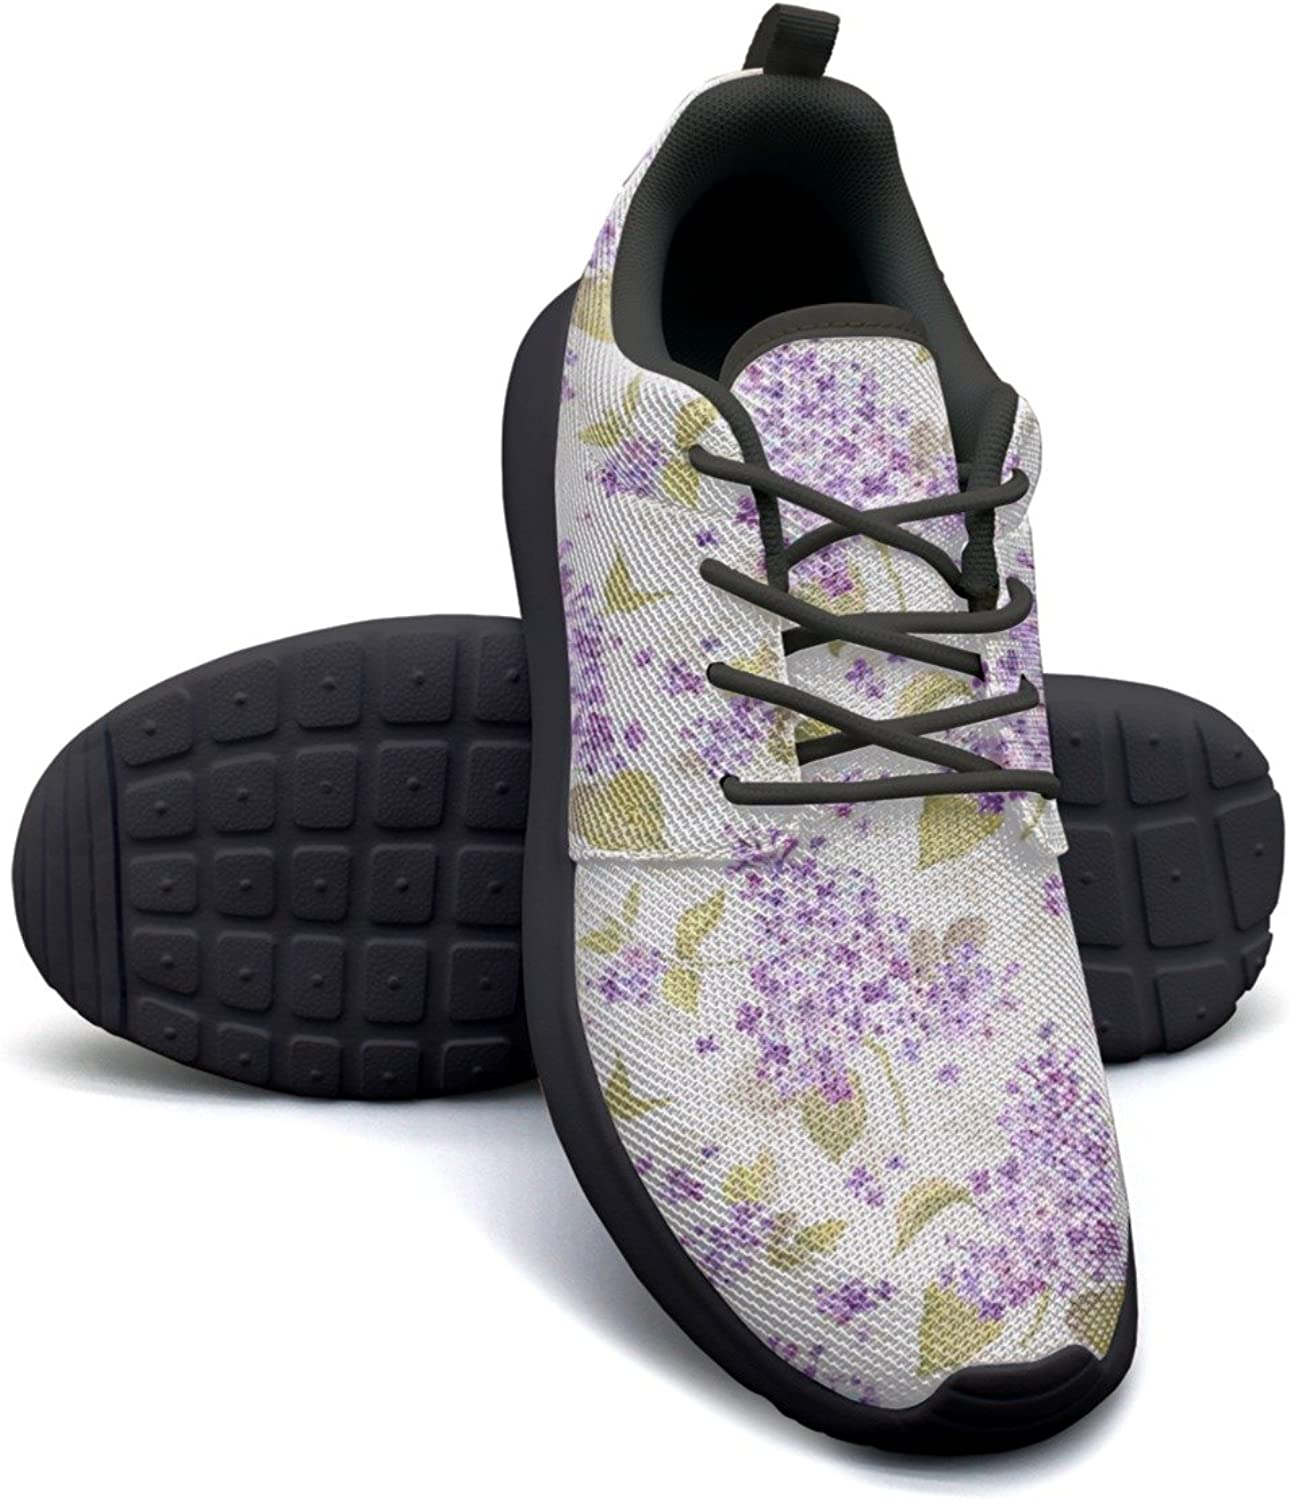 Gjsonmv Wisteria Artificial Flowers Purple mesh Lightweight shoes for Women Cool Sports Basketball Sneakers shoes